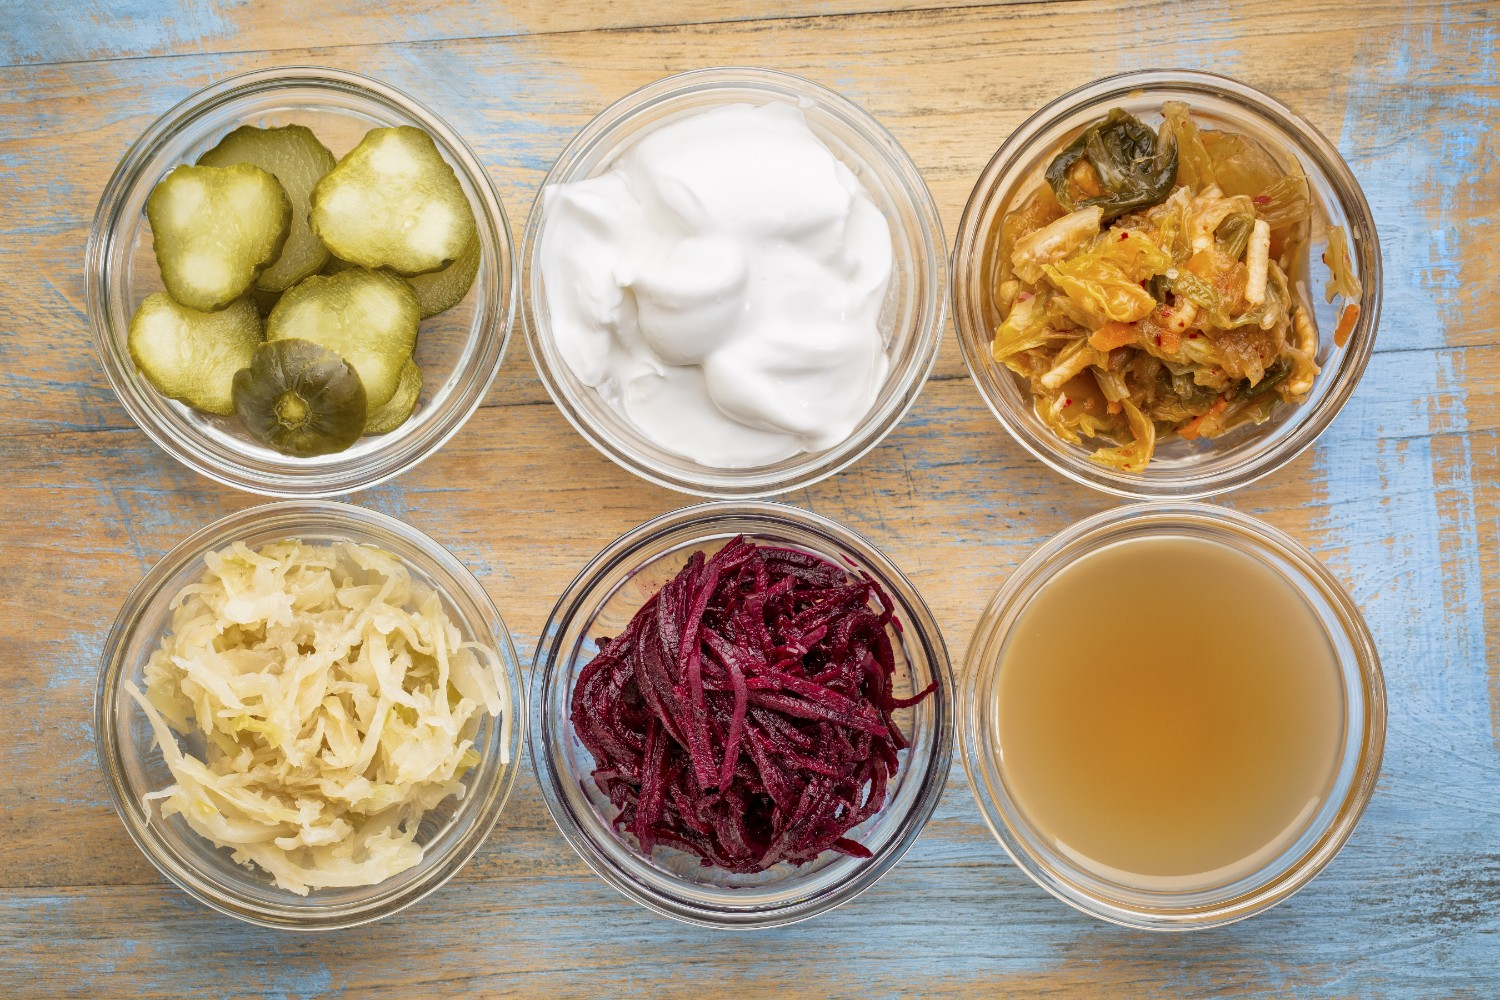 Probiotics are necessary for your health | Shutterstock